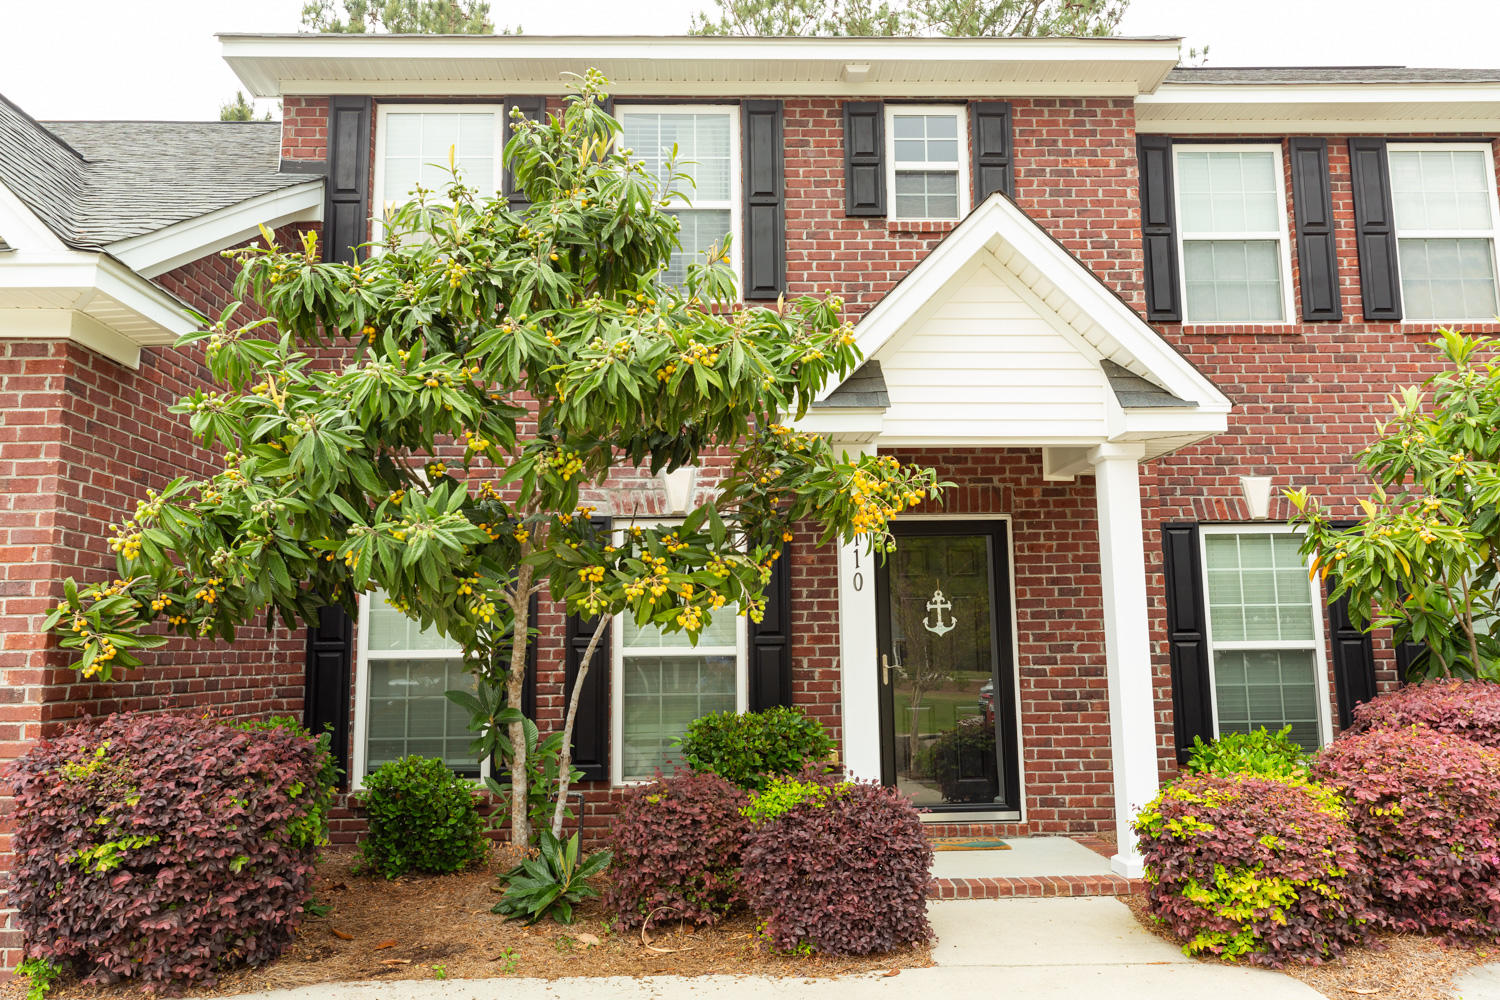 Limehouse Villas Homes For Sale - 110 Tuscany, Ladson, SC - 8